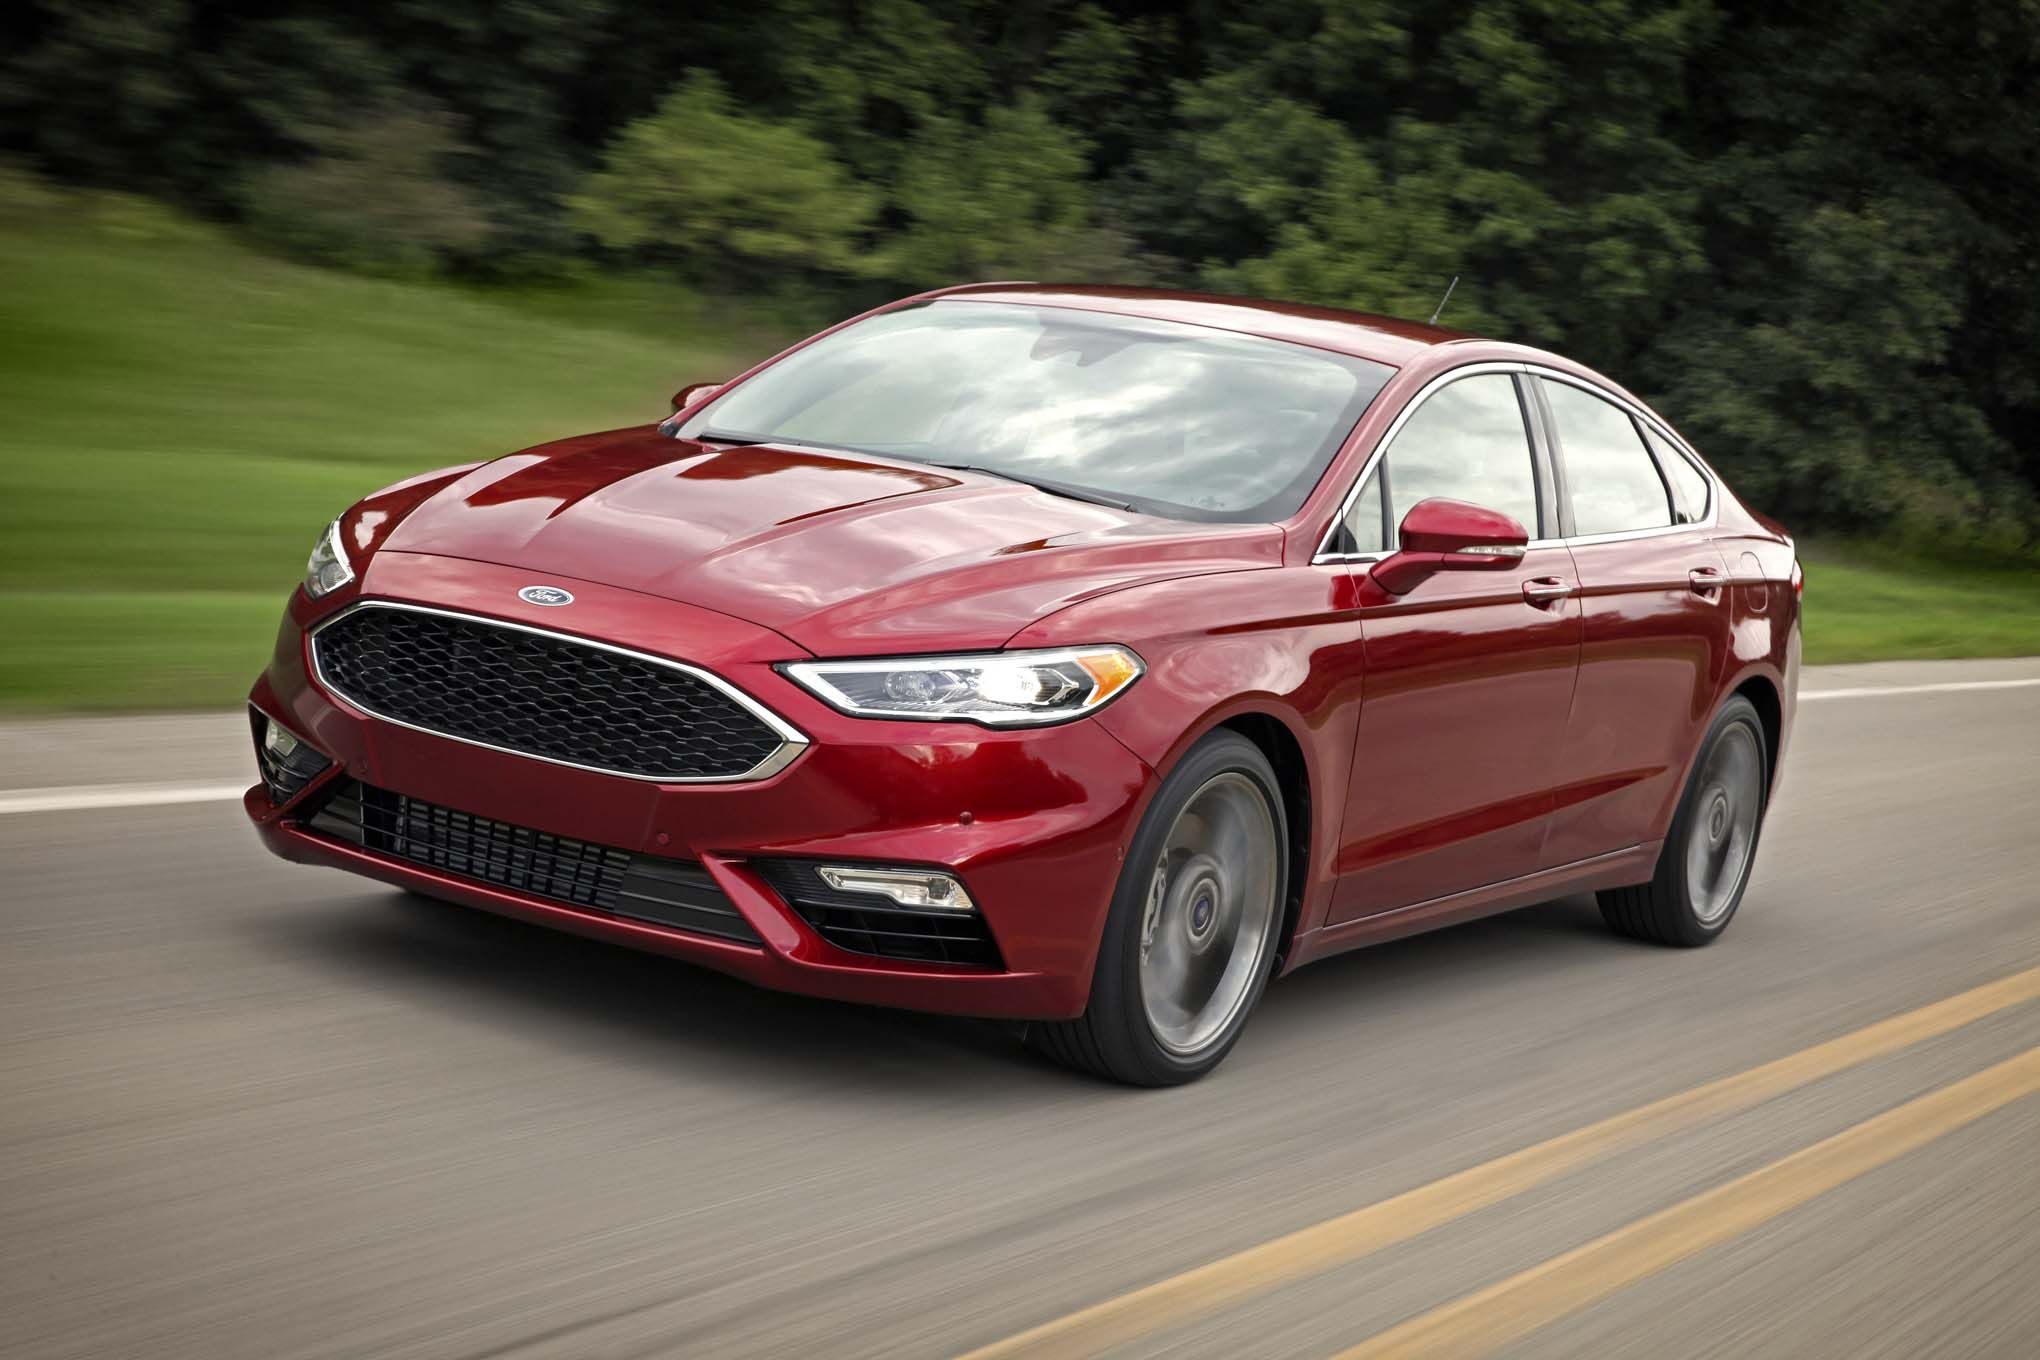 Motor trend reports you can enjoy big power in the practical package of a ford fusion